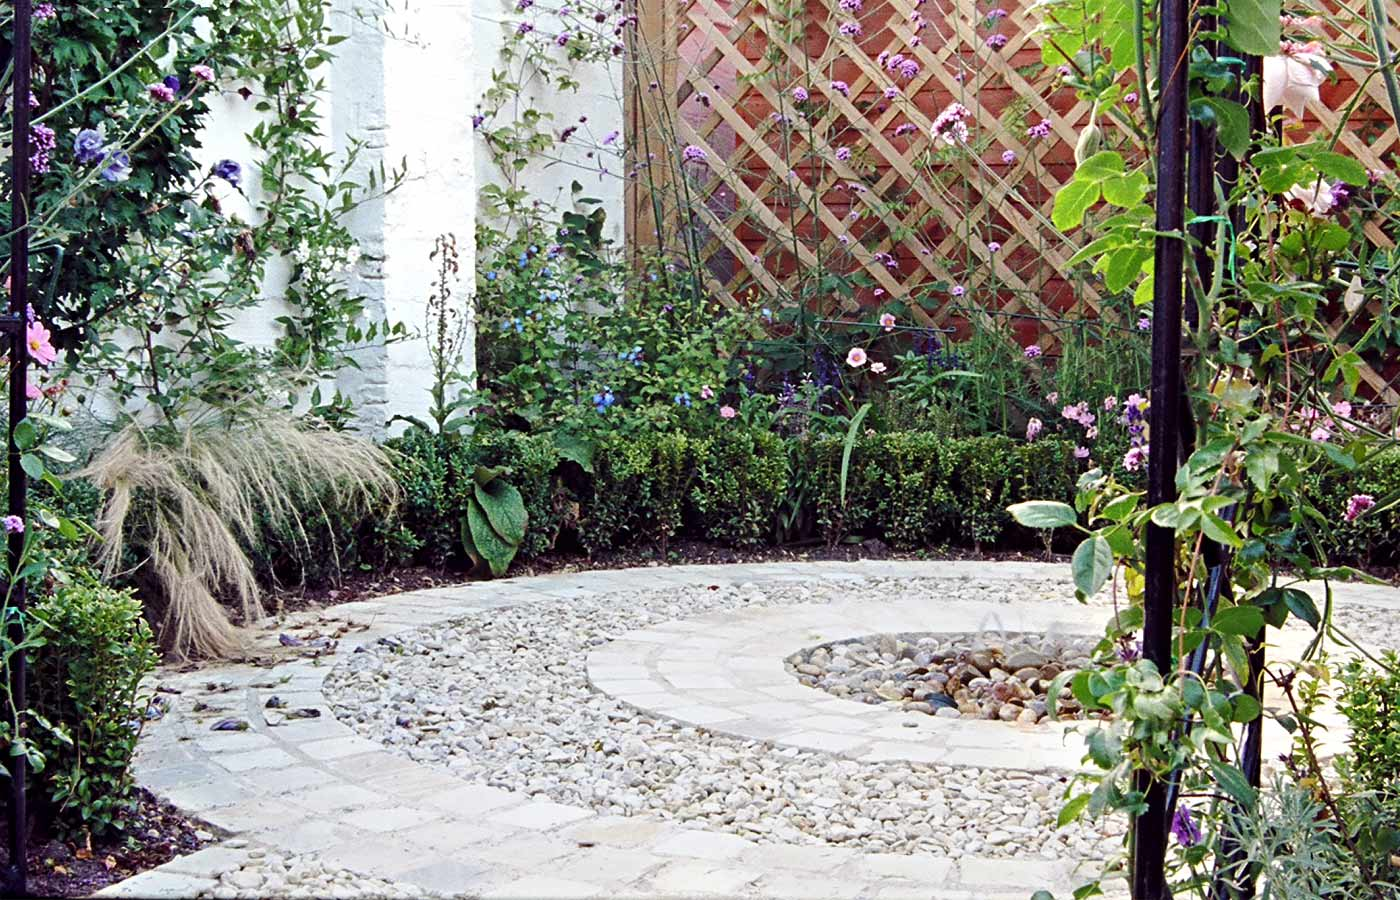 Circular area with water fountain